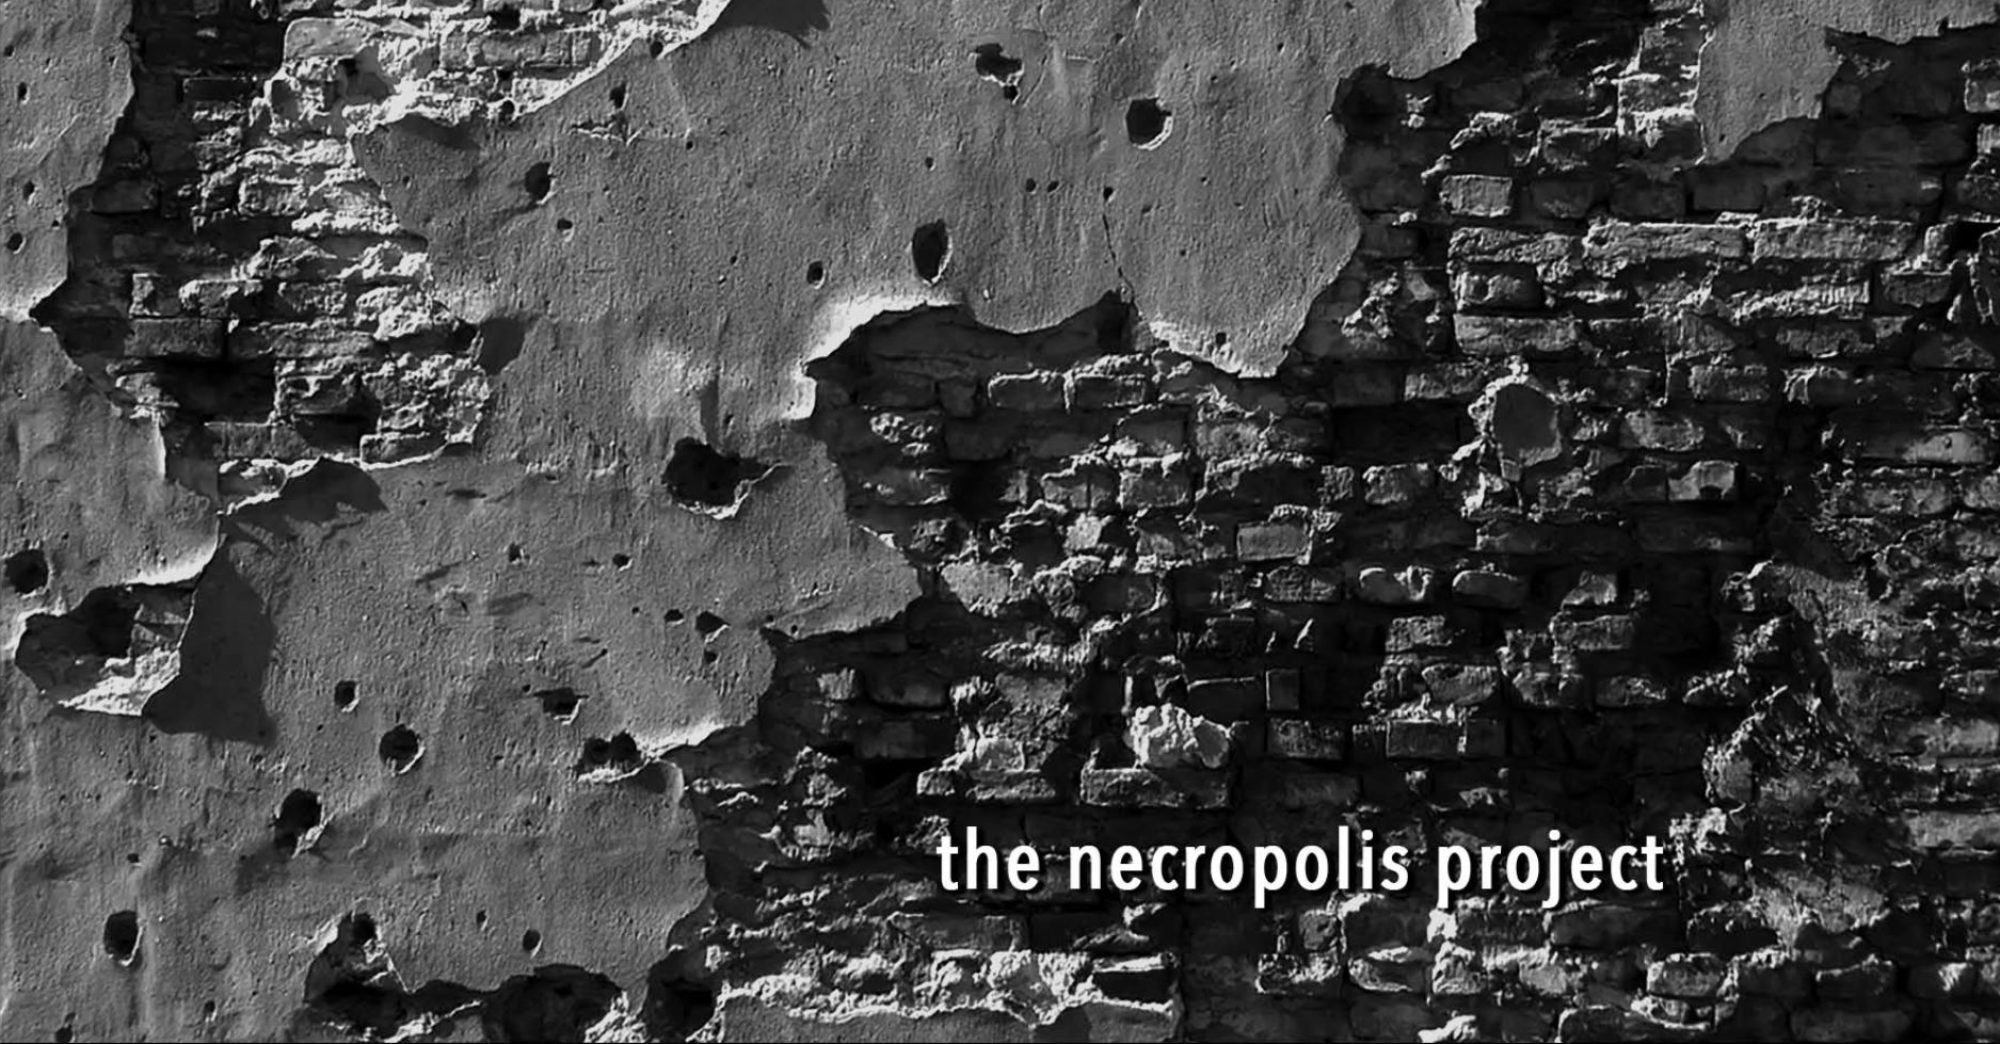 the necropolis project